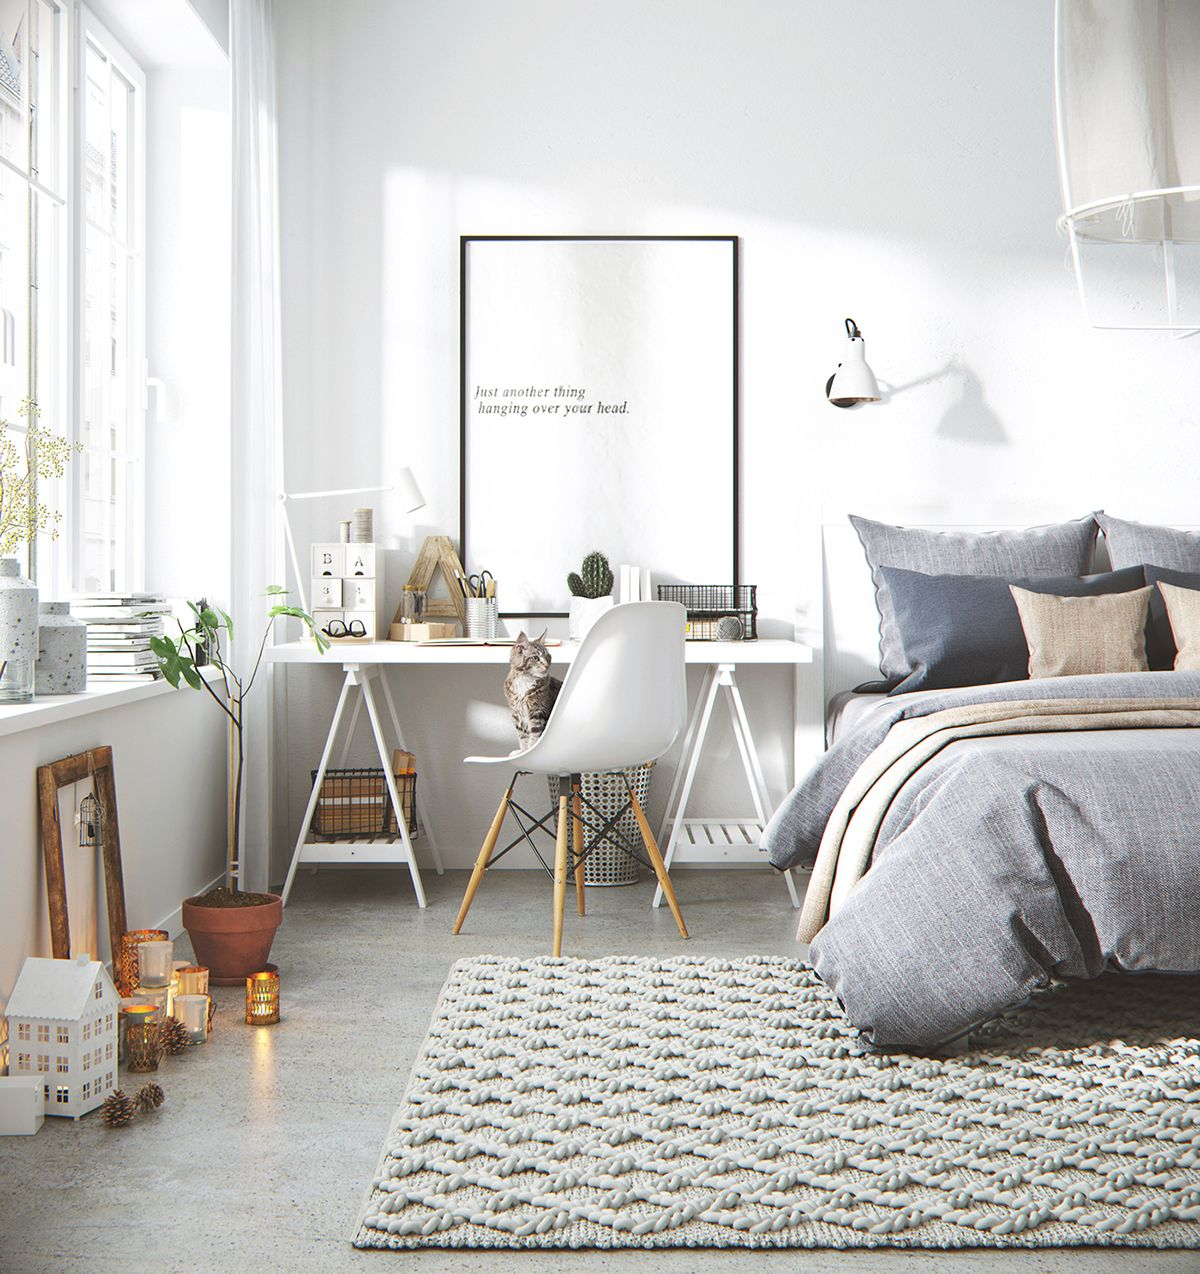 Proiect 3d De Amenajare In Stil Nordic Jurnal De Design Interior Scandinavian Design Bedroom Bedroom Interior Home Bedroom